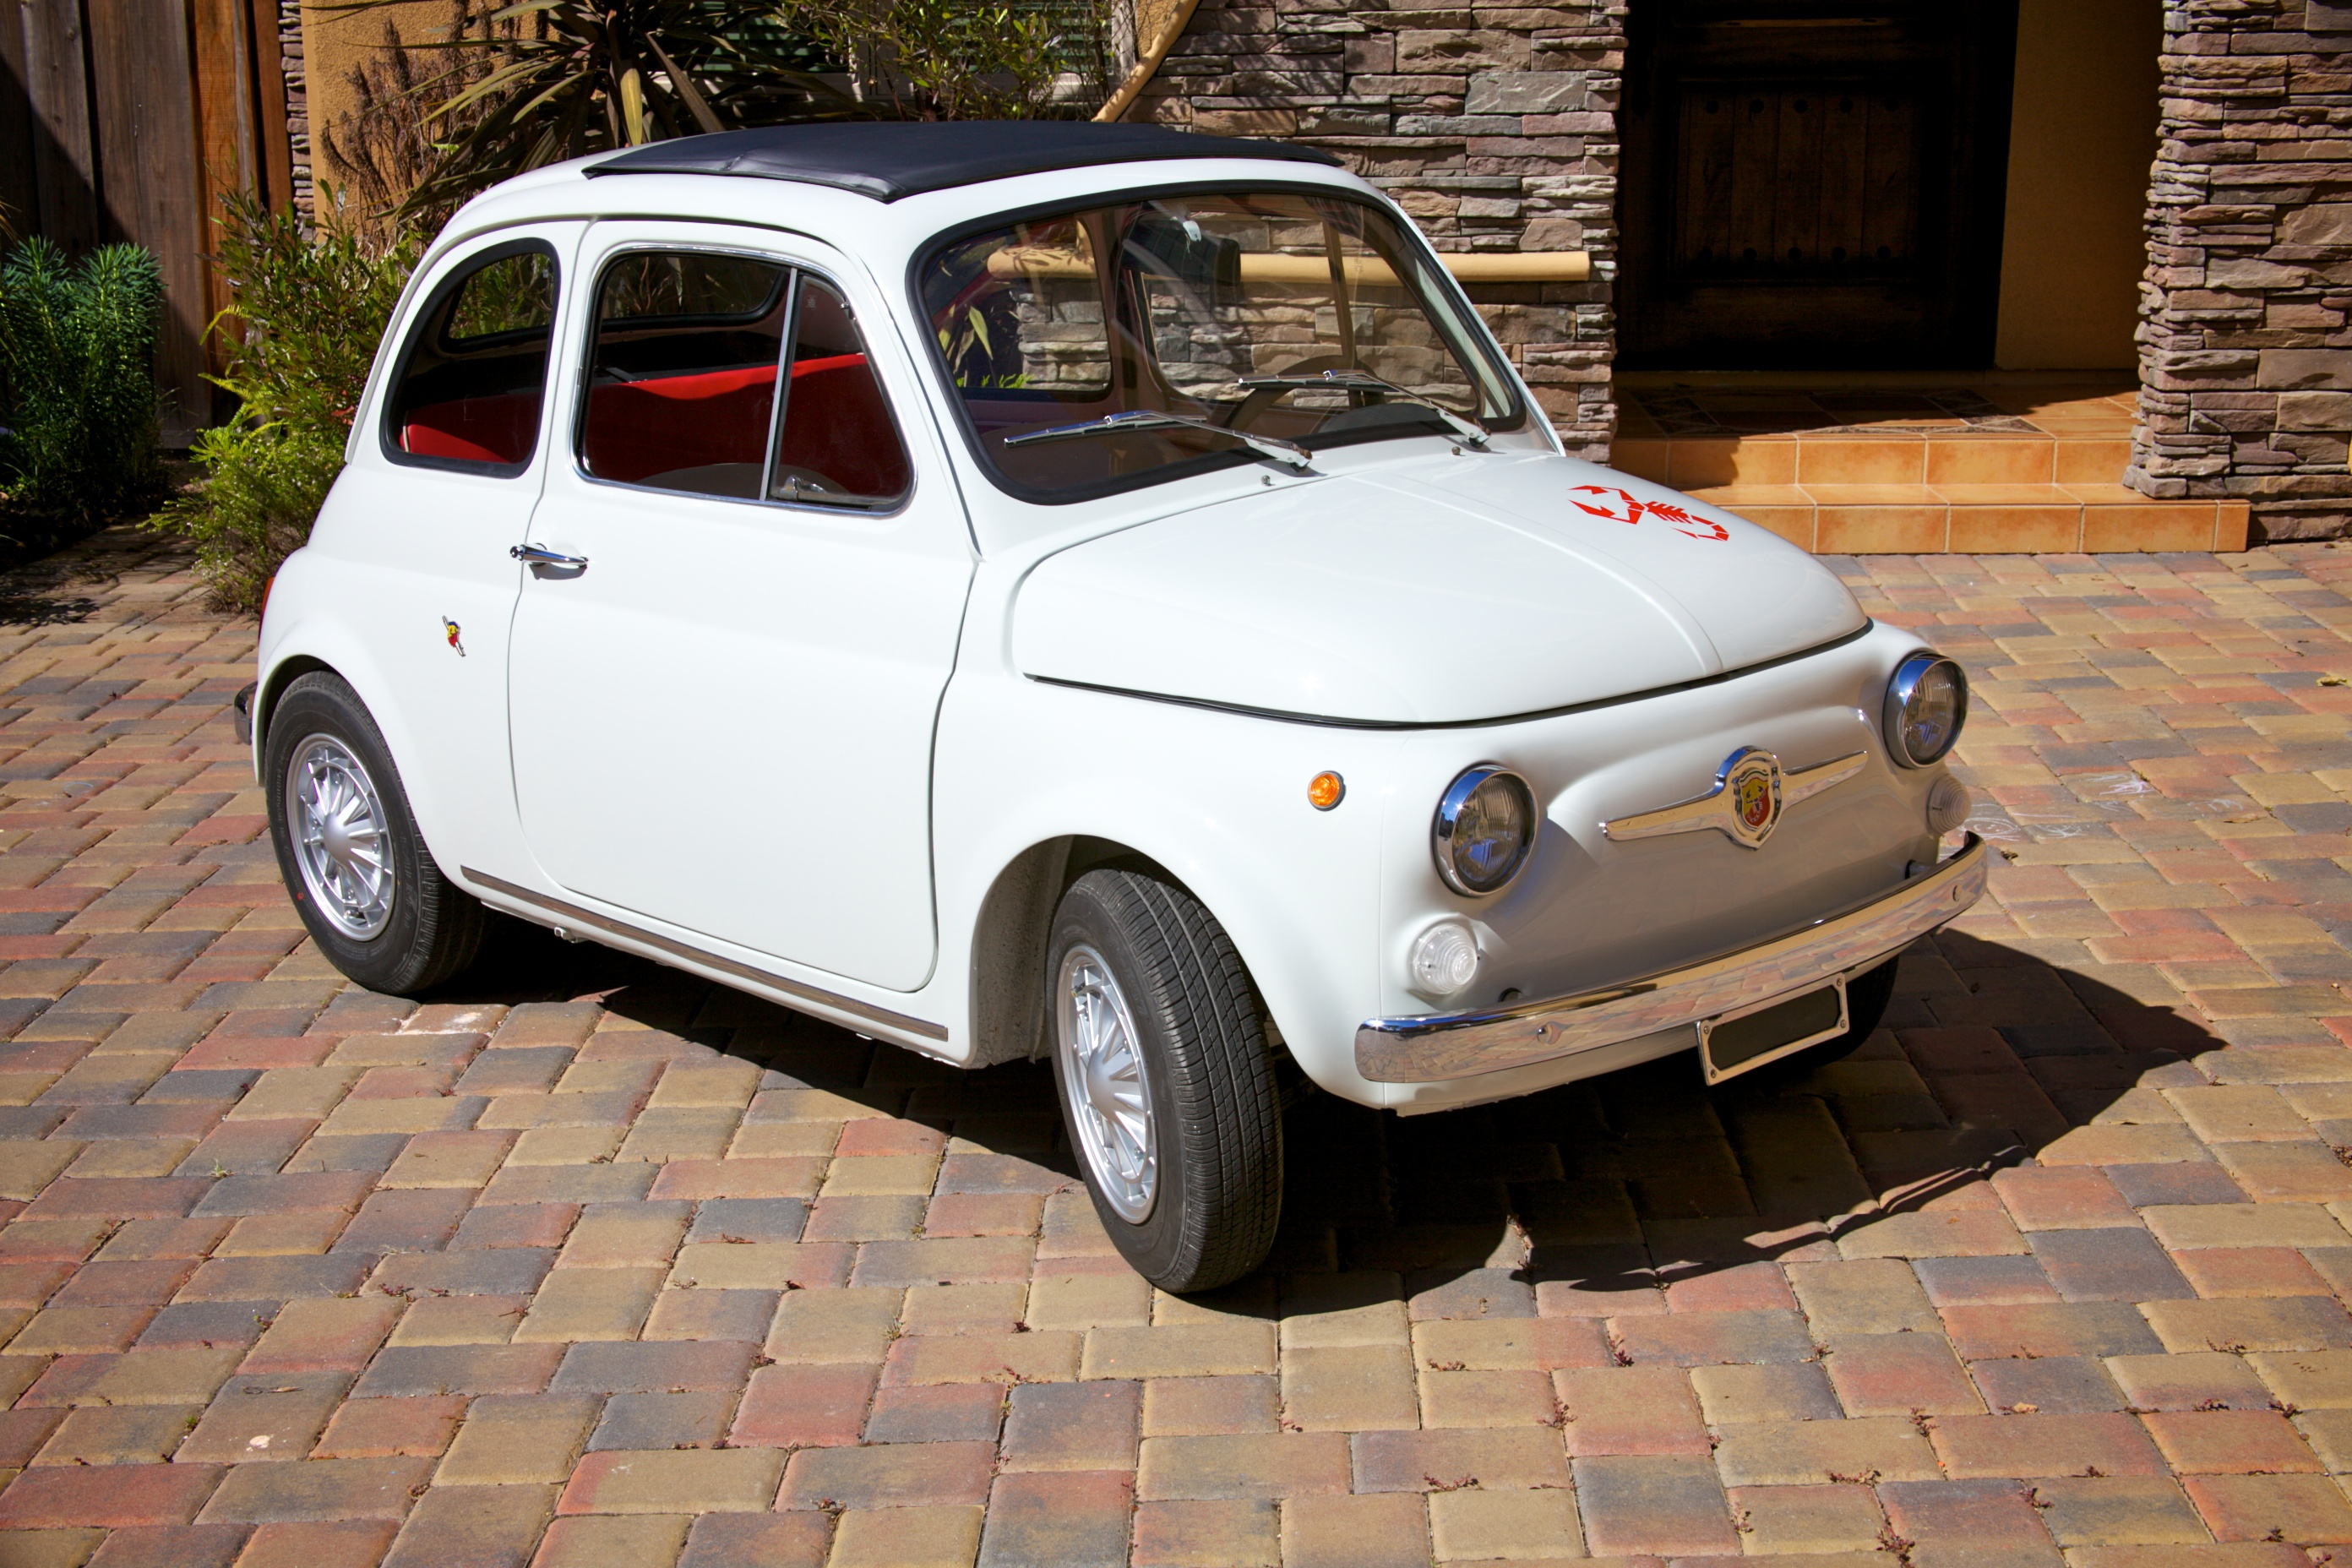 1968 Fiat Abarth 595 SS - 'Tribute'